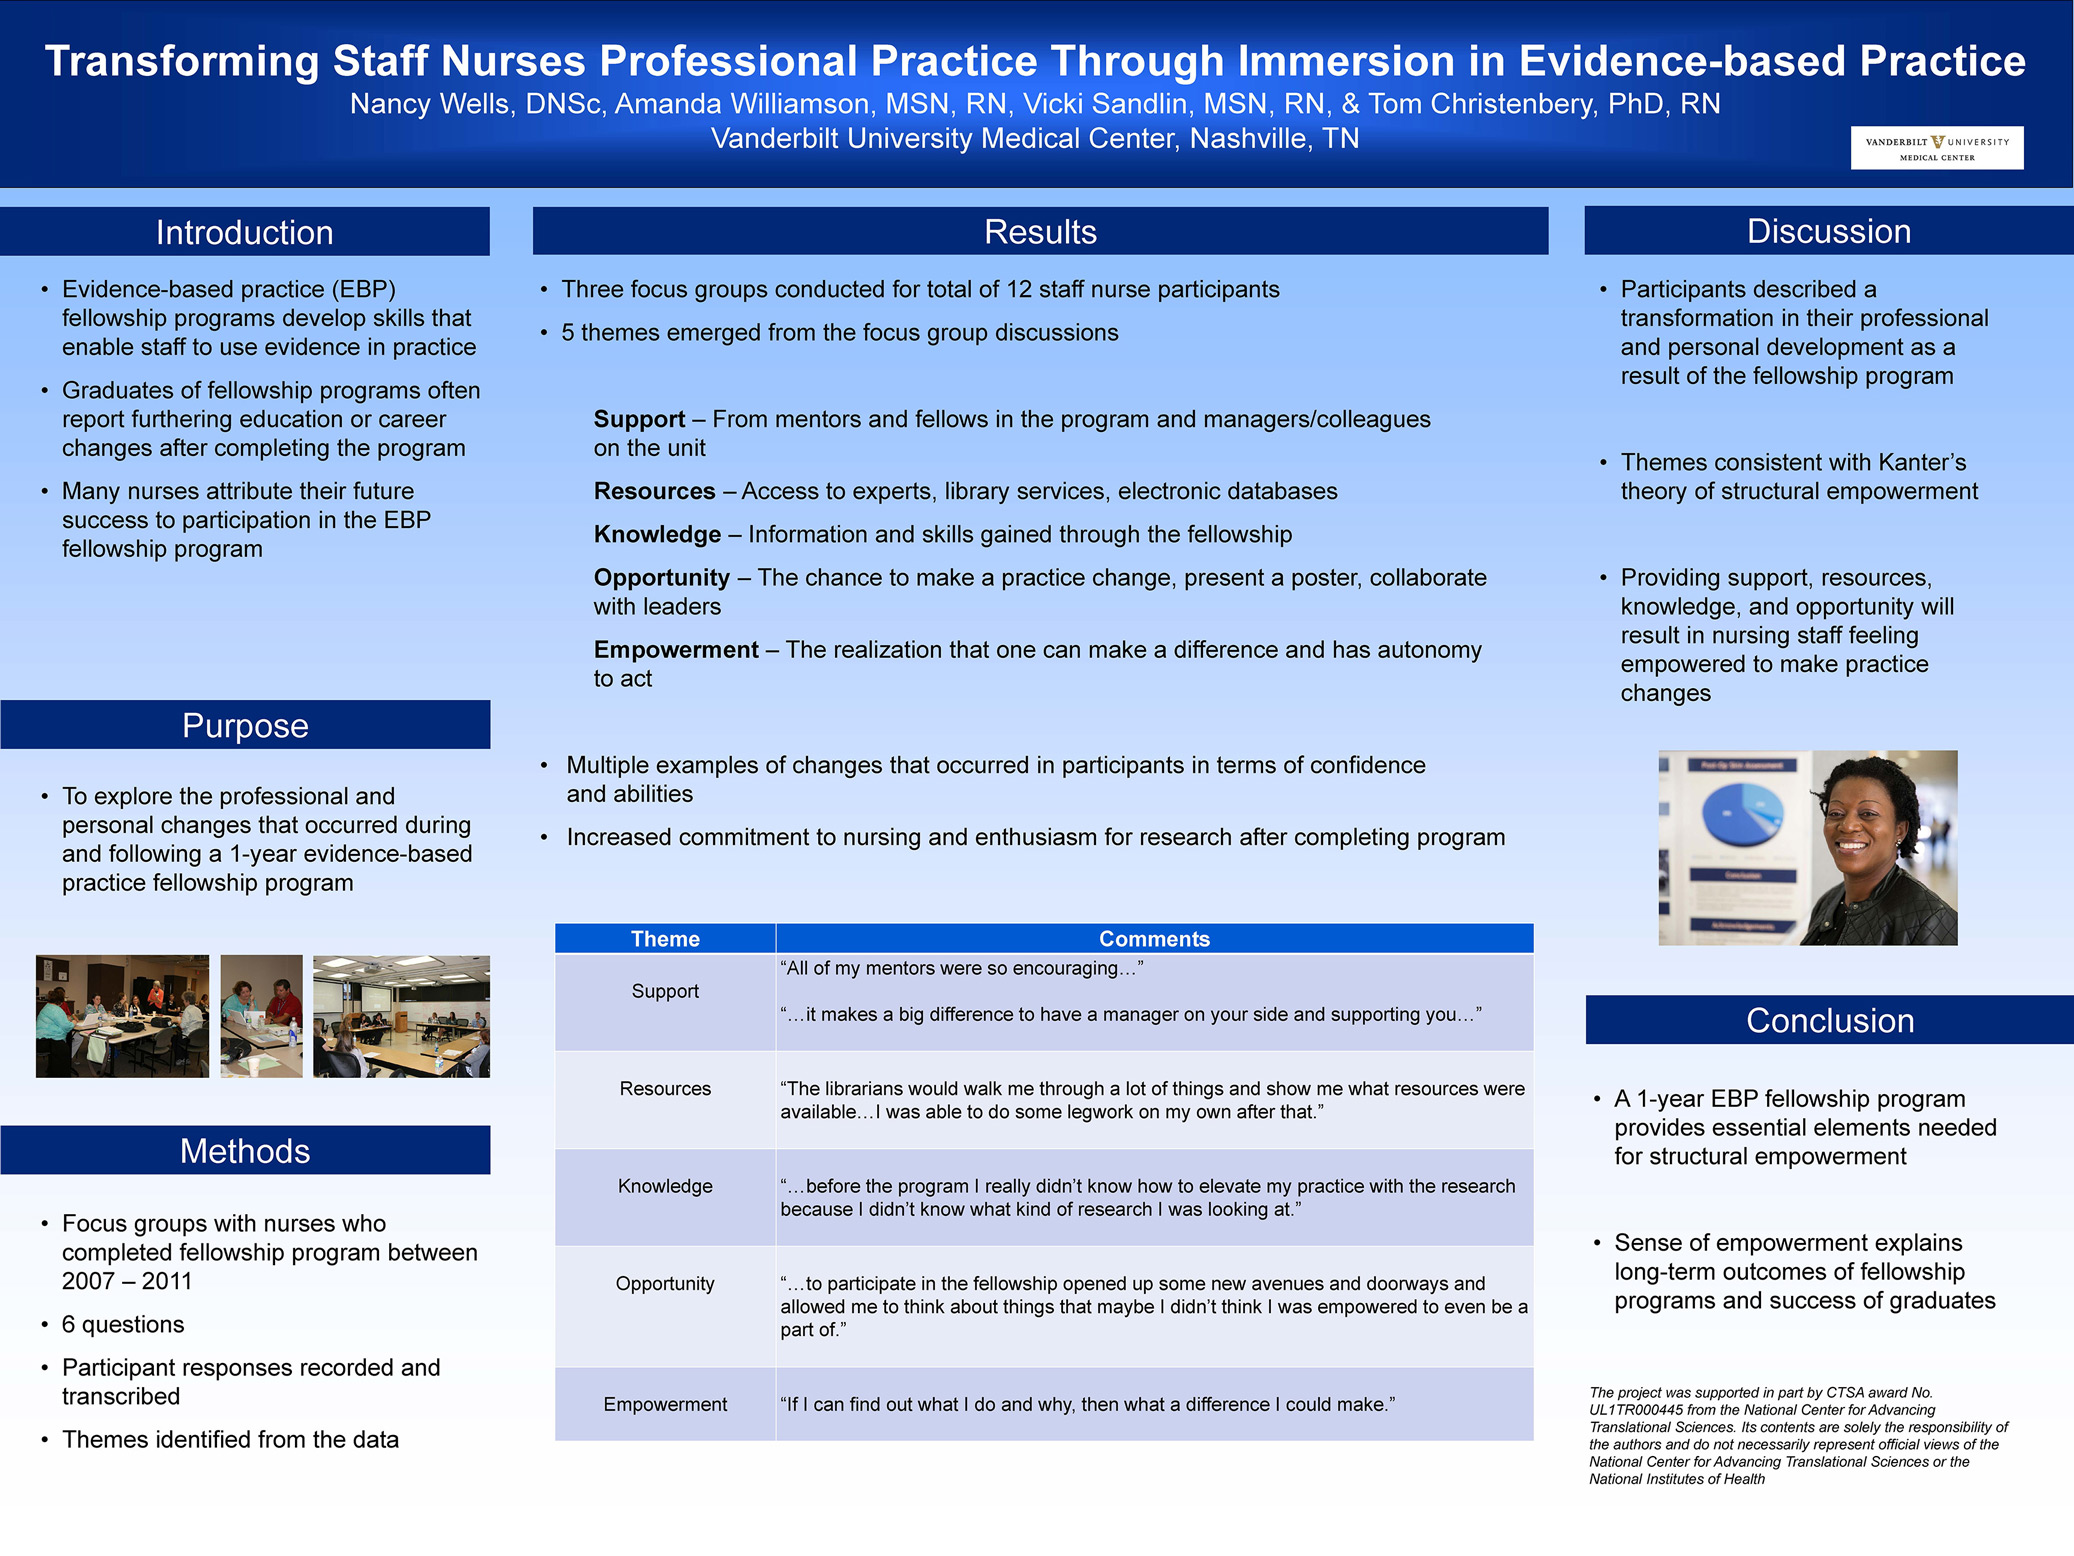 evidence based practice for quality improvement The team selected the iowa model of evidence-based practice to promote quality care (titler, 2011) and kotter's eight stage process for major change (kotter, 1996) to guide implementation and sustain progress.